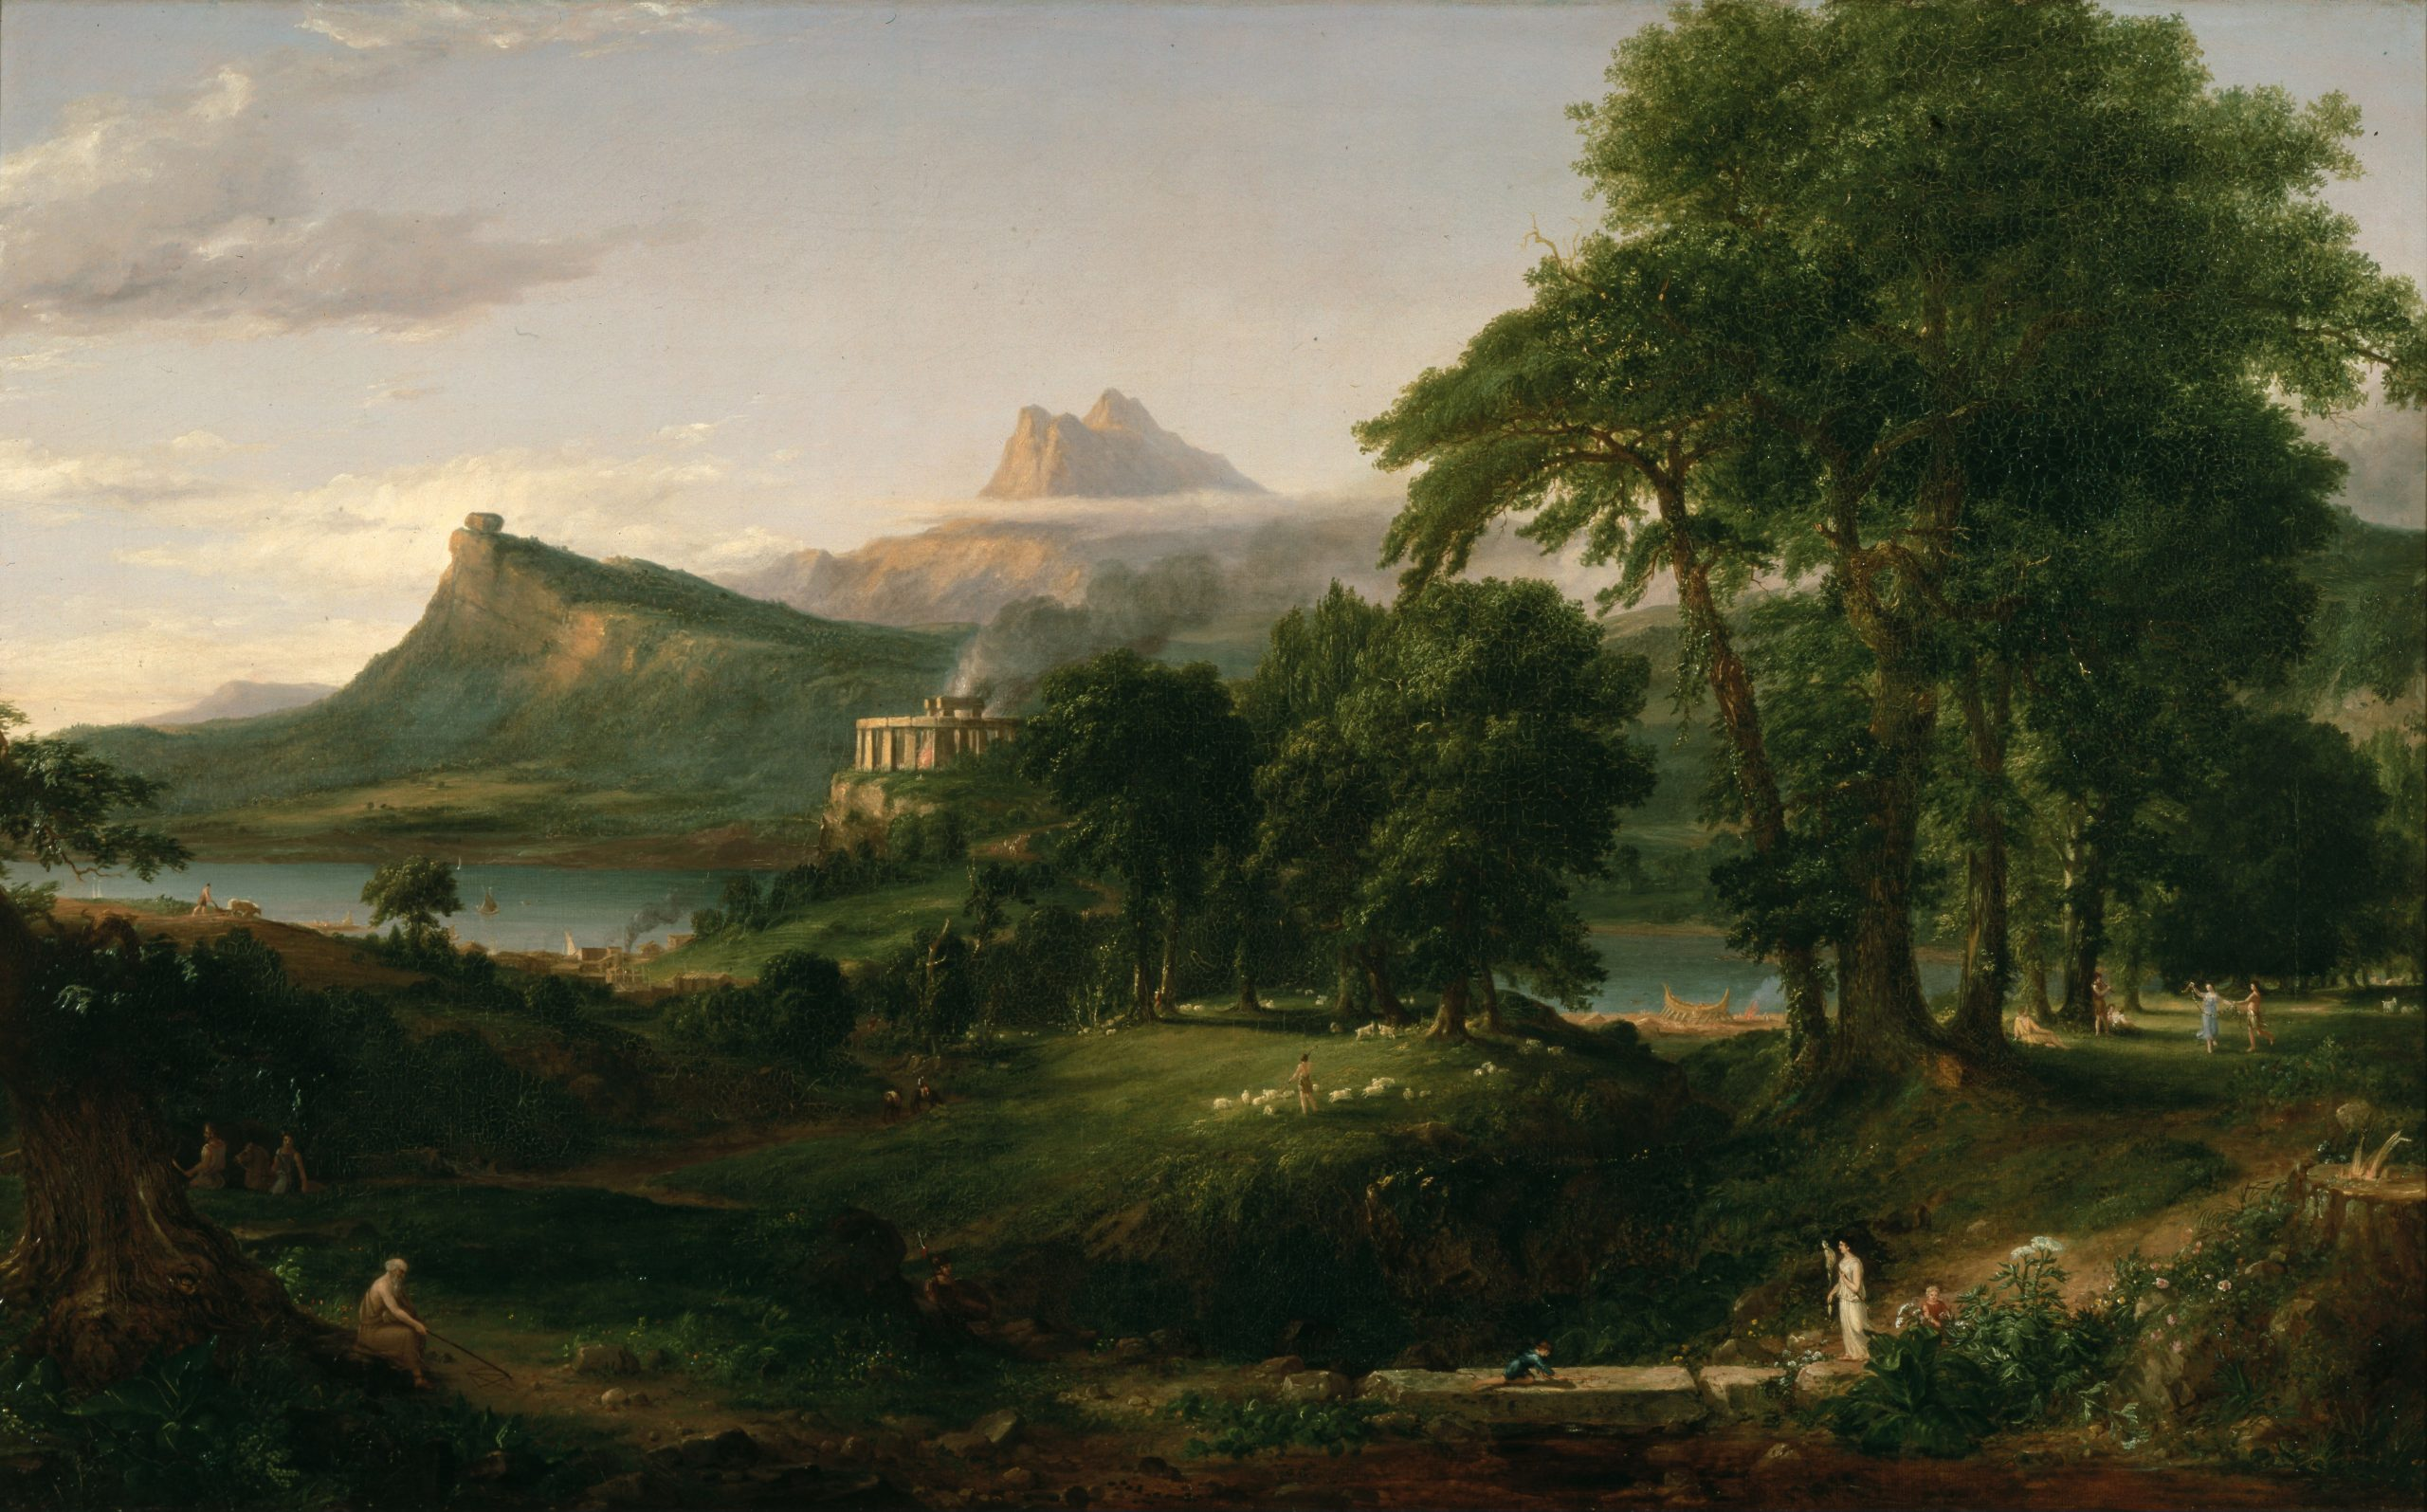 A photograph of Thomas Cole's The Arcadian or Pastoral State, an oil on canvas painting depicting a bucolic paradise, such as now espoused in the modern cottagecore aesthetic